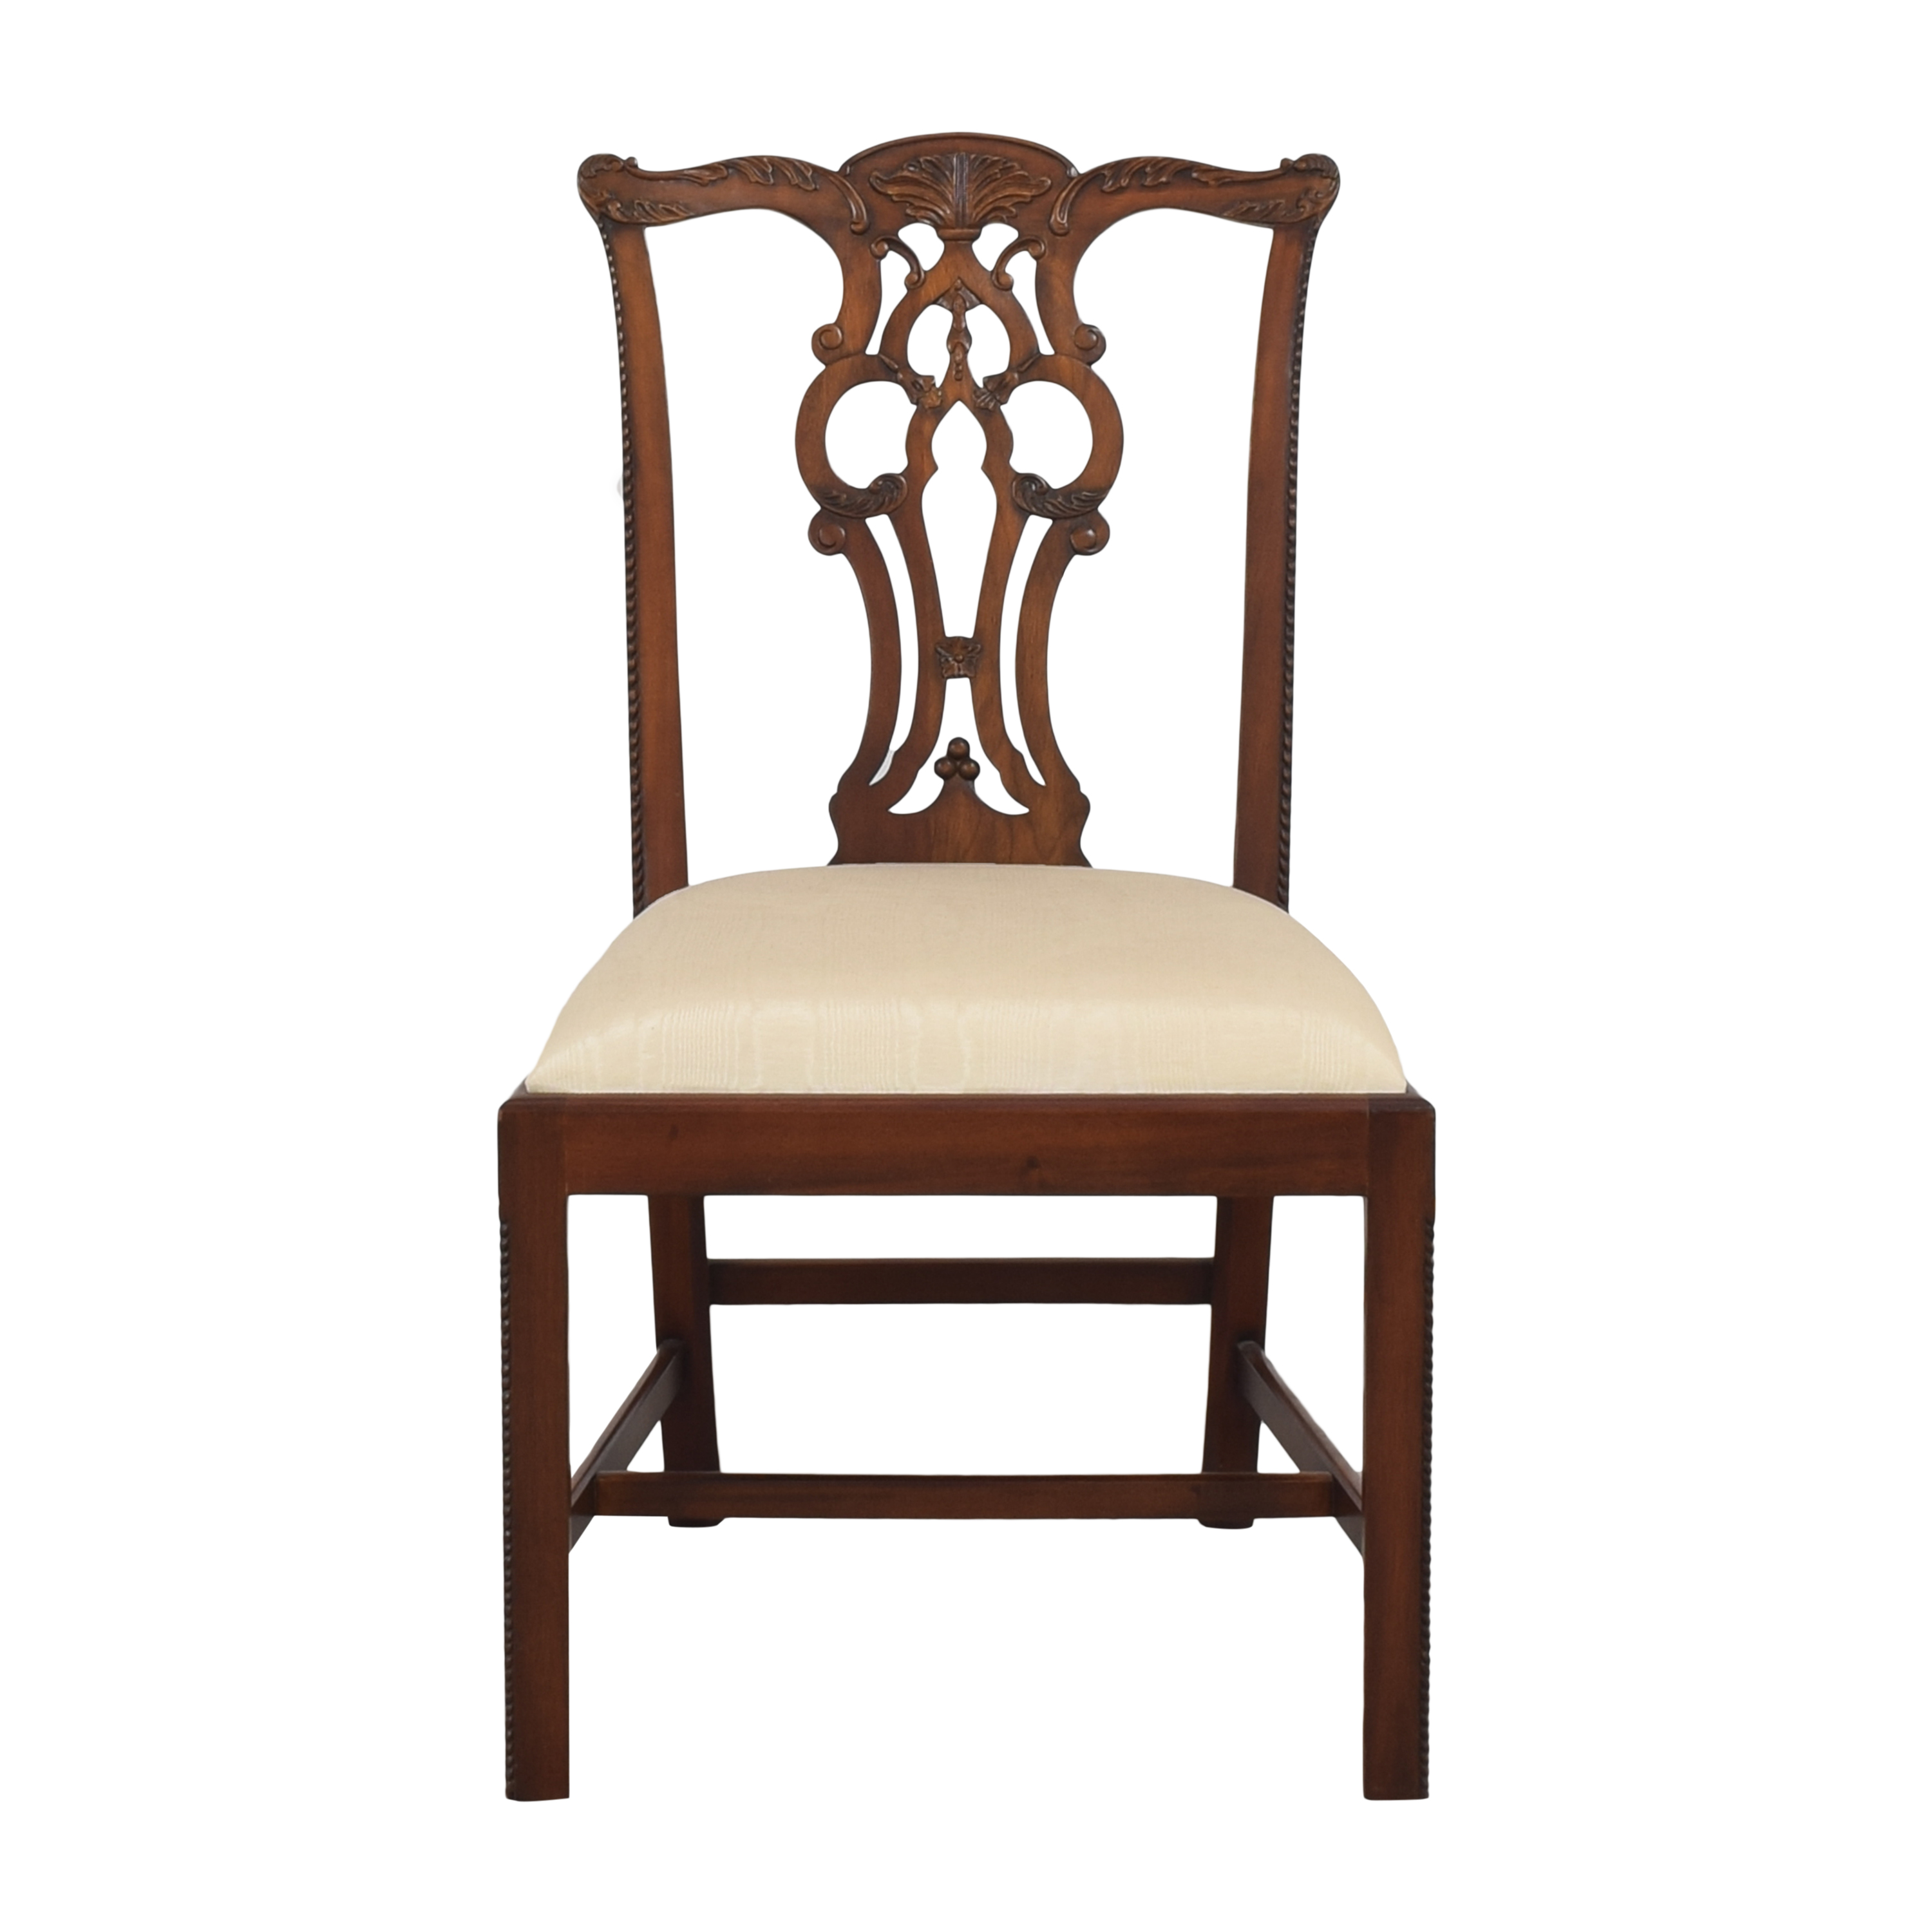 Maitland-Smith Maitland-Smith Chippendale Dining Side Chair nyc